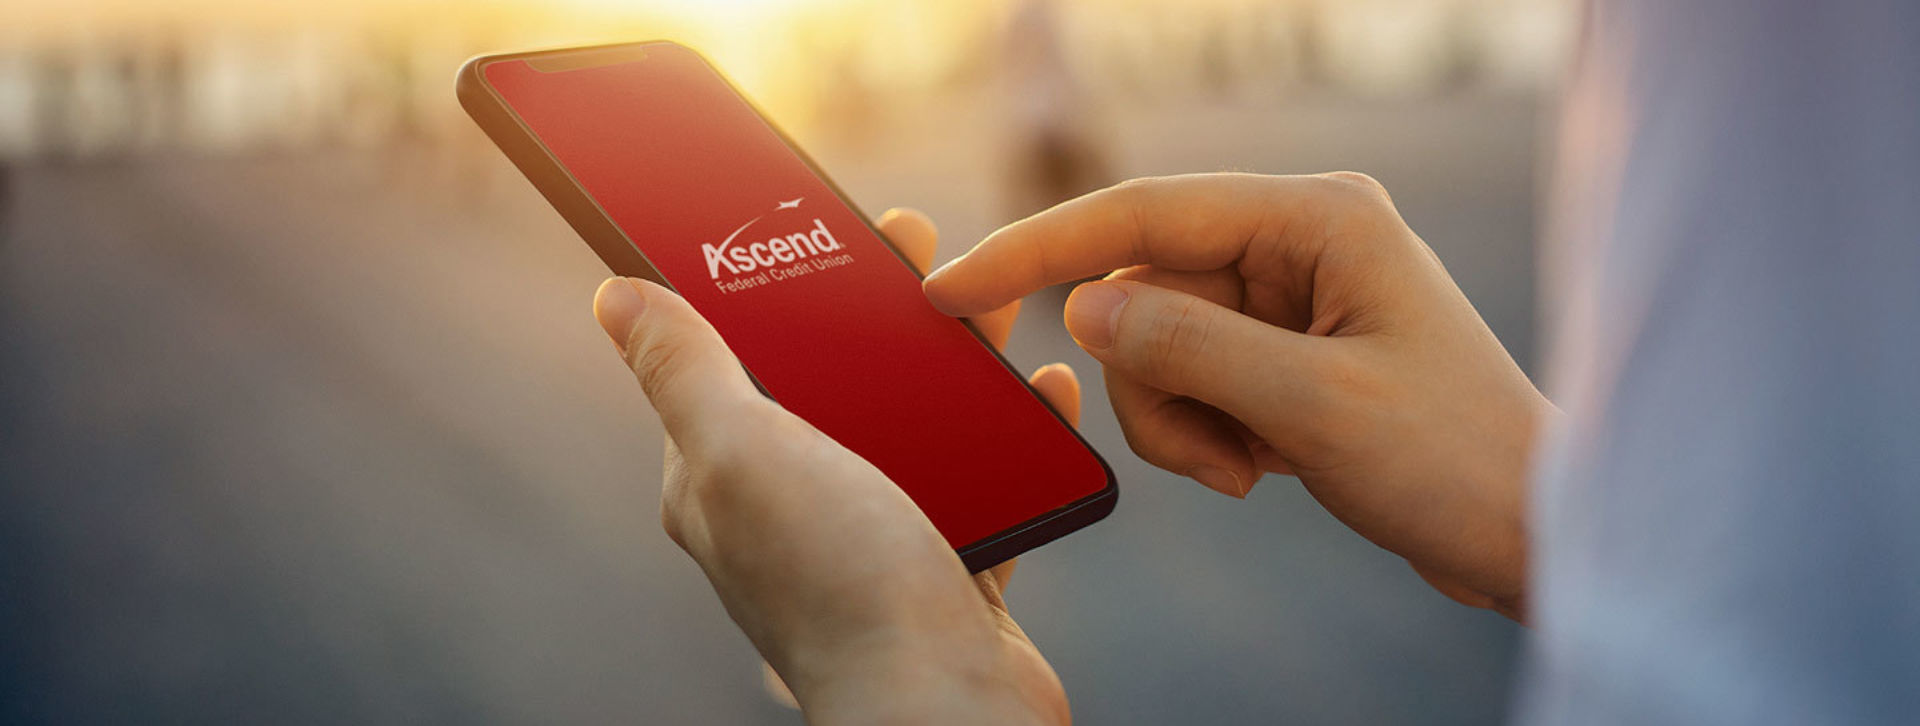 Hands holding a smartphone with Ascend logo